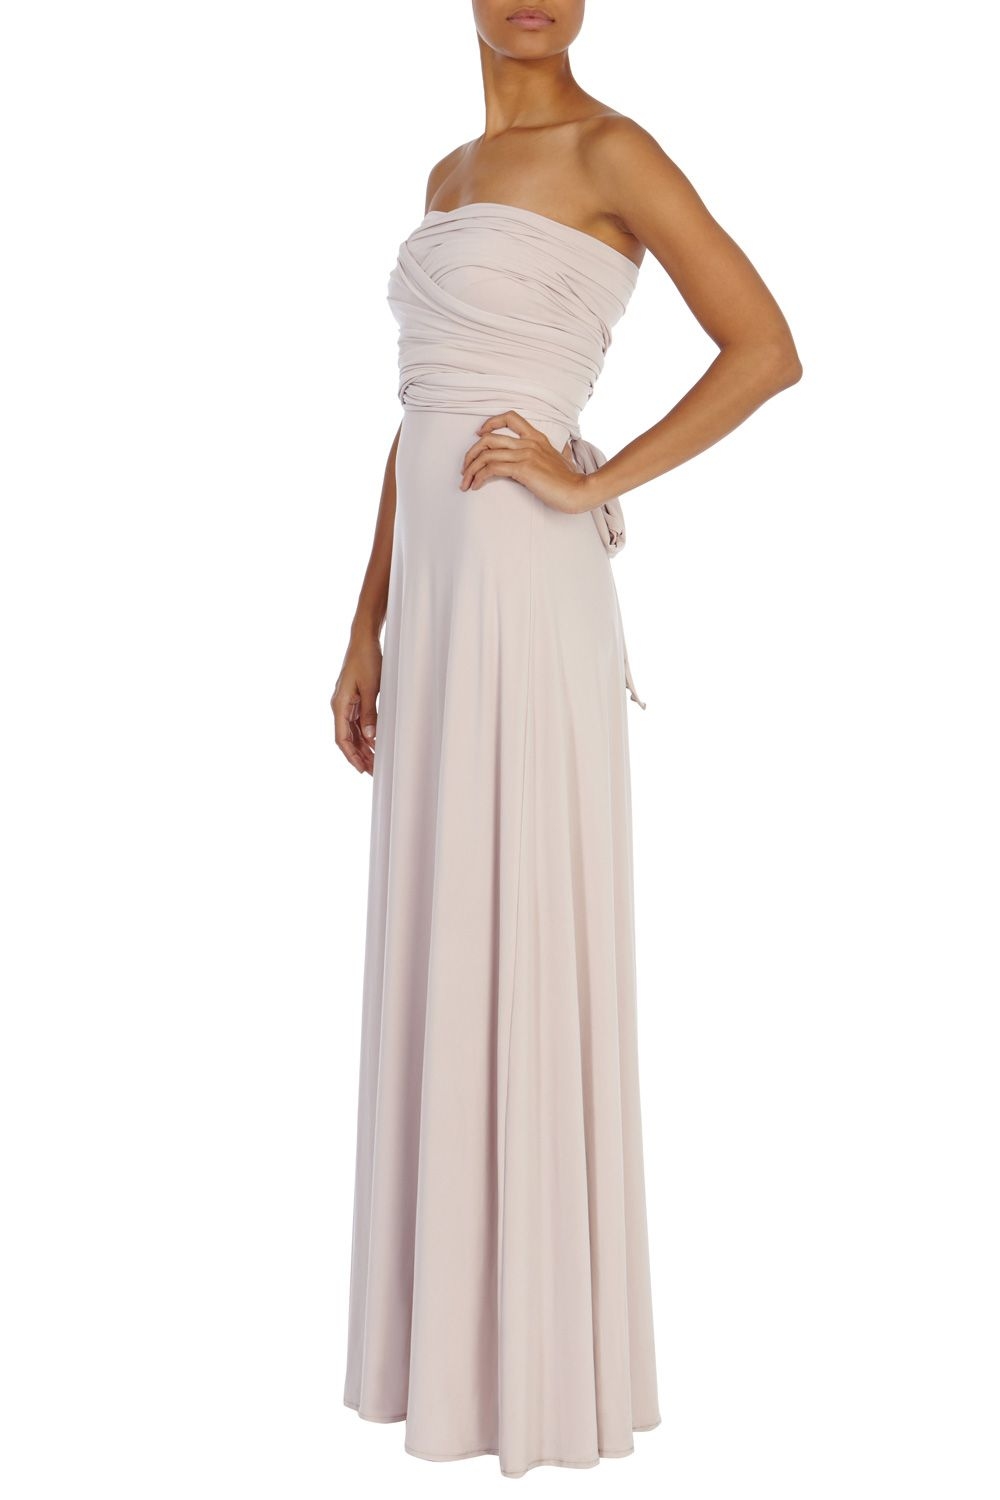 Bridesmaid Dresses | Pinks CORWIN MULTI TIE DRESS | Coast Stores ...